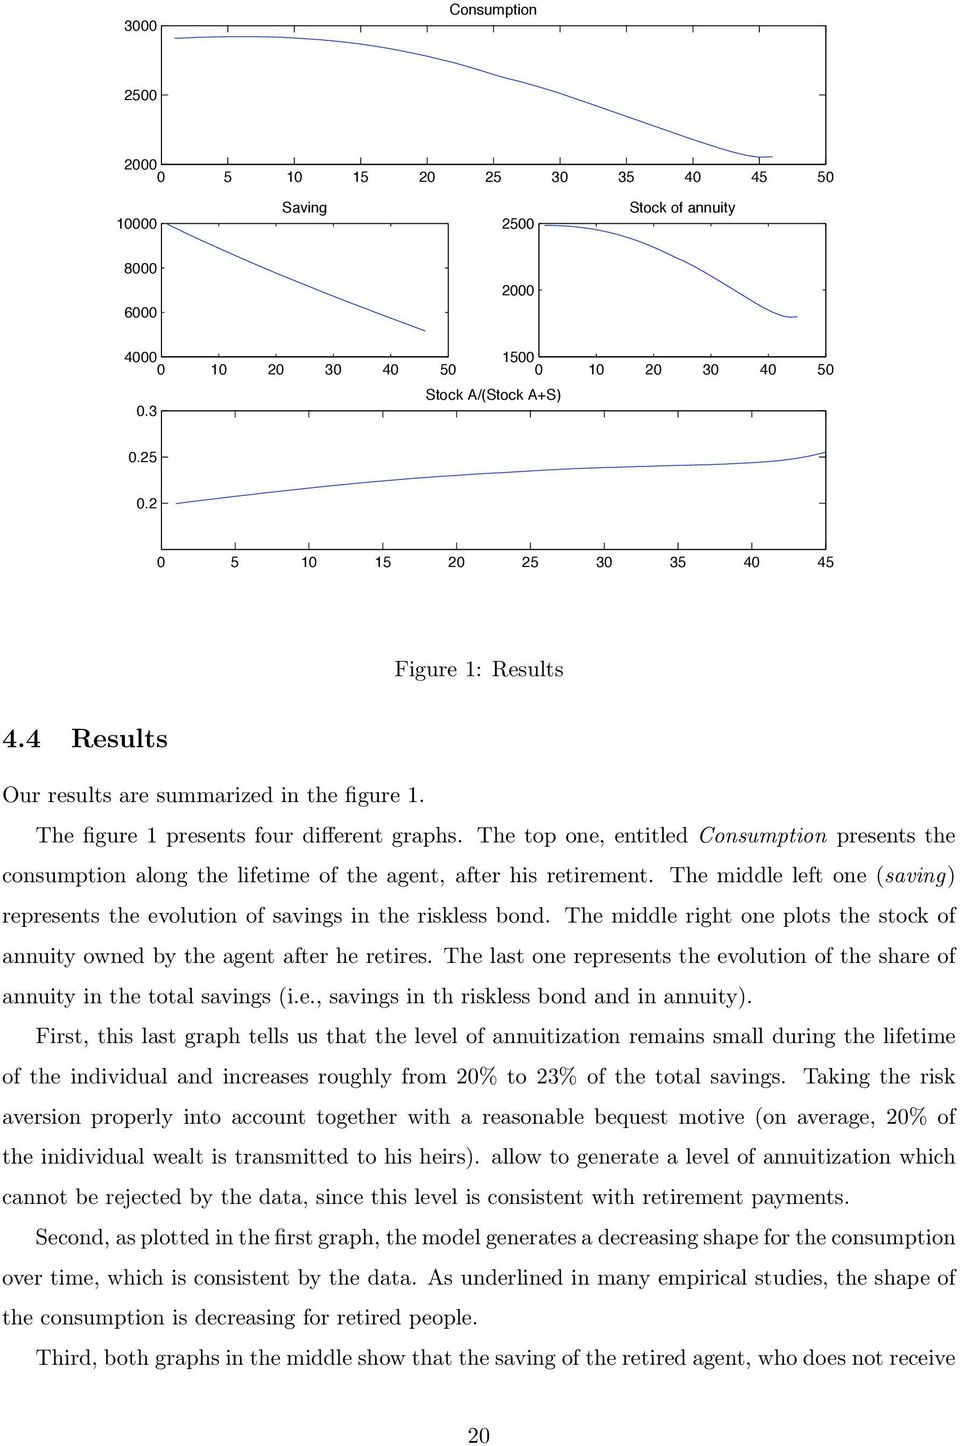 The top one, entitled Consumption presents the consumption along the lifetime of the agent, after his retirement. The middle left one saving represents the evolution of savings in the riskless bond.